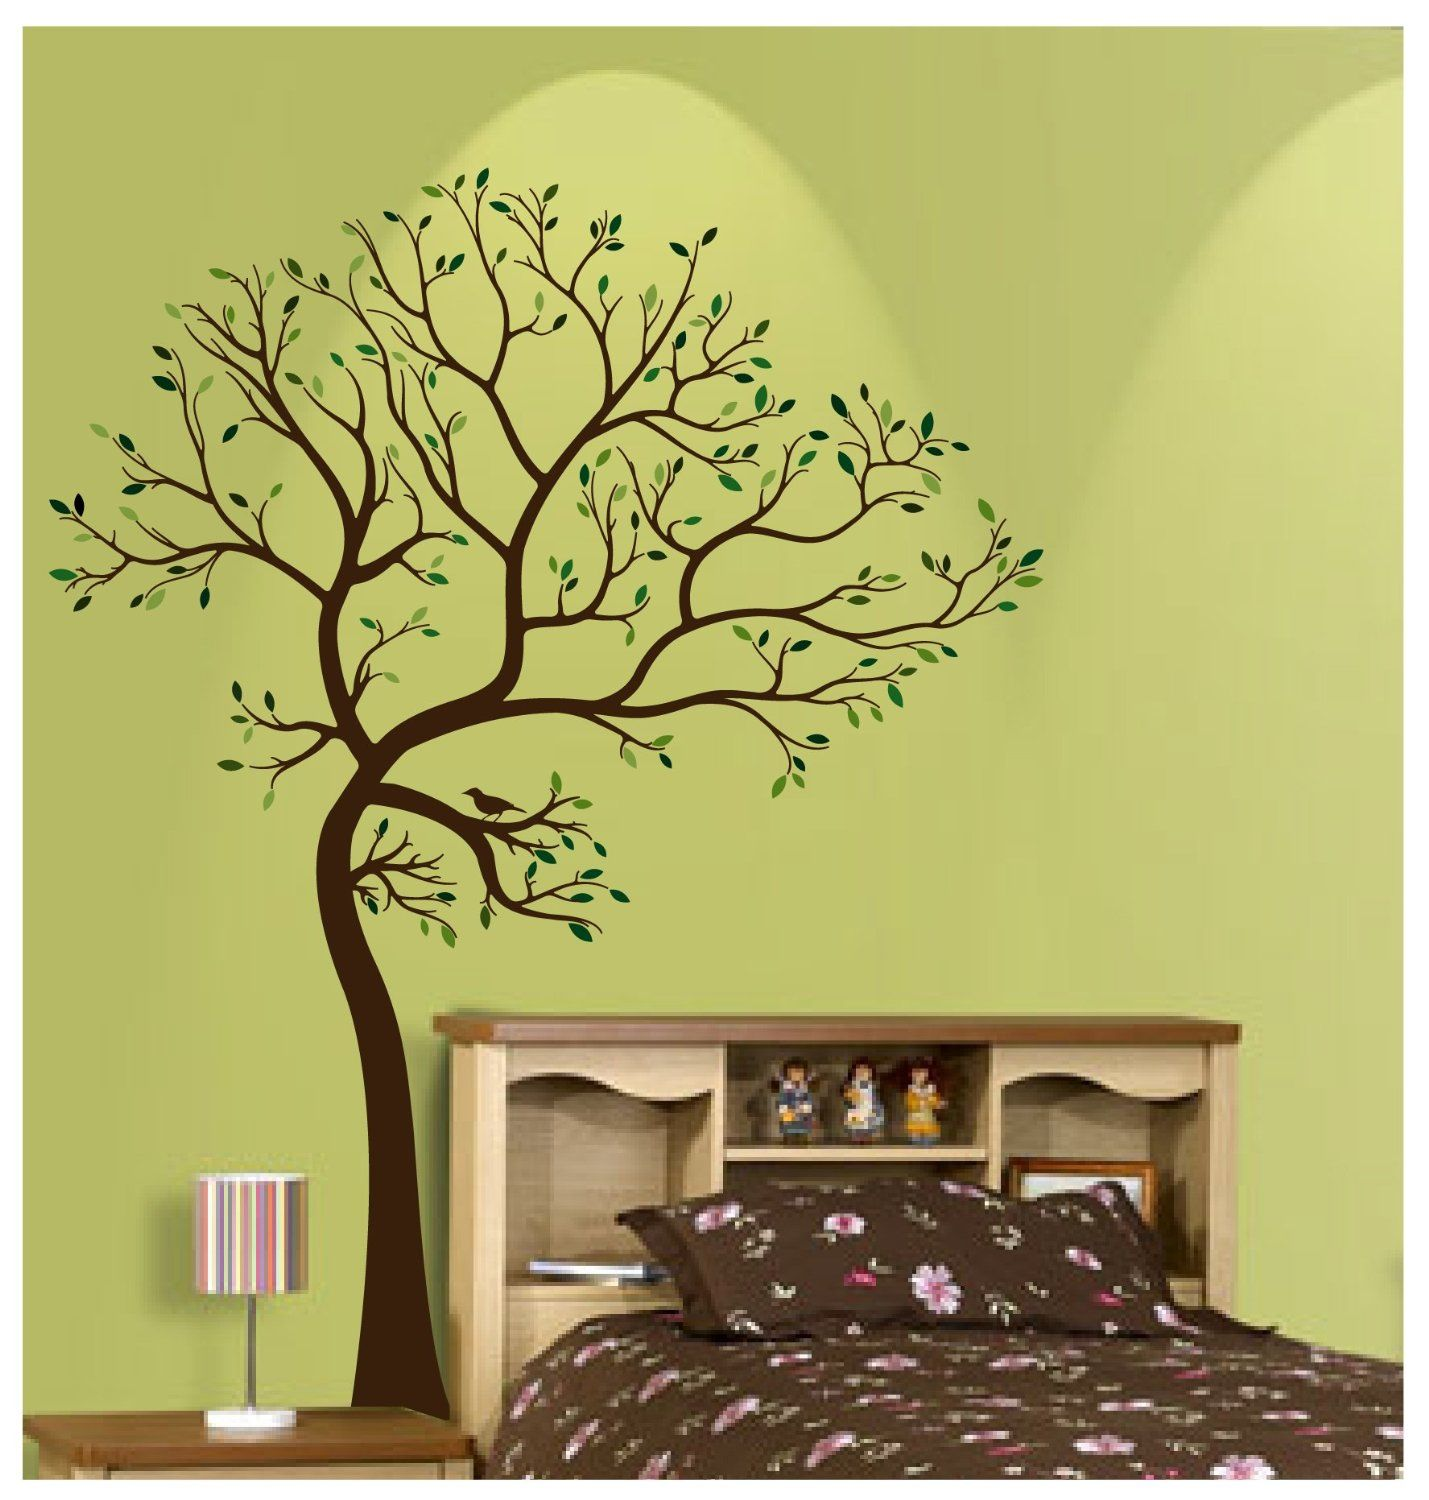 tree branch birds nature wall decal [auall264] - $54.00 : wall ...